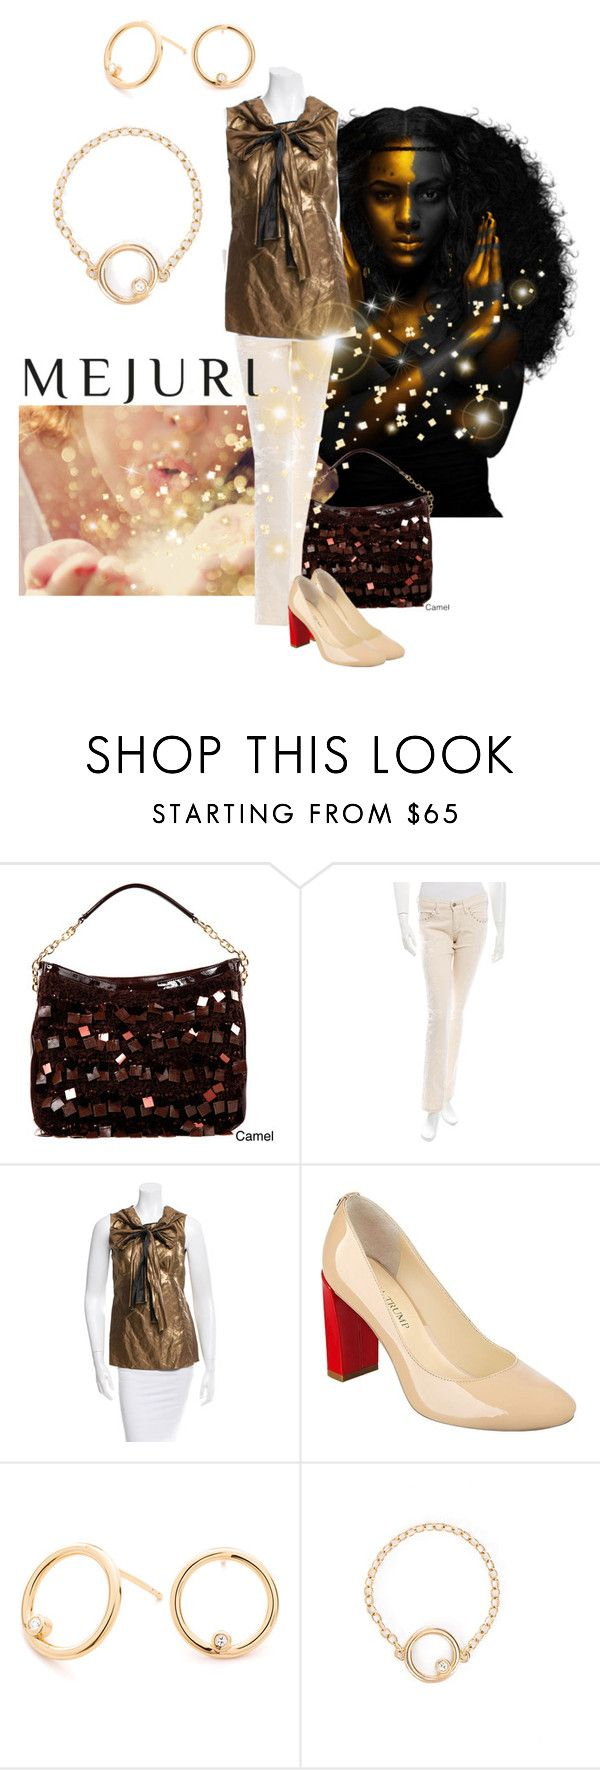 """""""A touch of gold"""" by maria-kuroshchepova ❤ liked on Polyvore featuring Nicole Lee, Isabel Marant, Marni, Ivanka Trump, contestentry and jenchaexmejuri"""